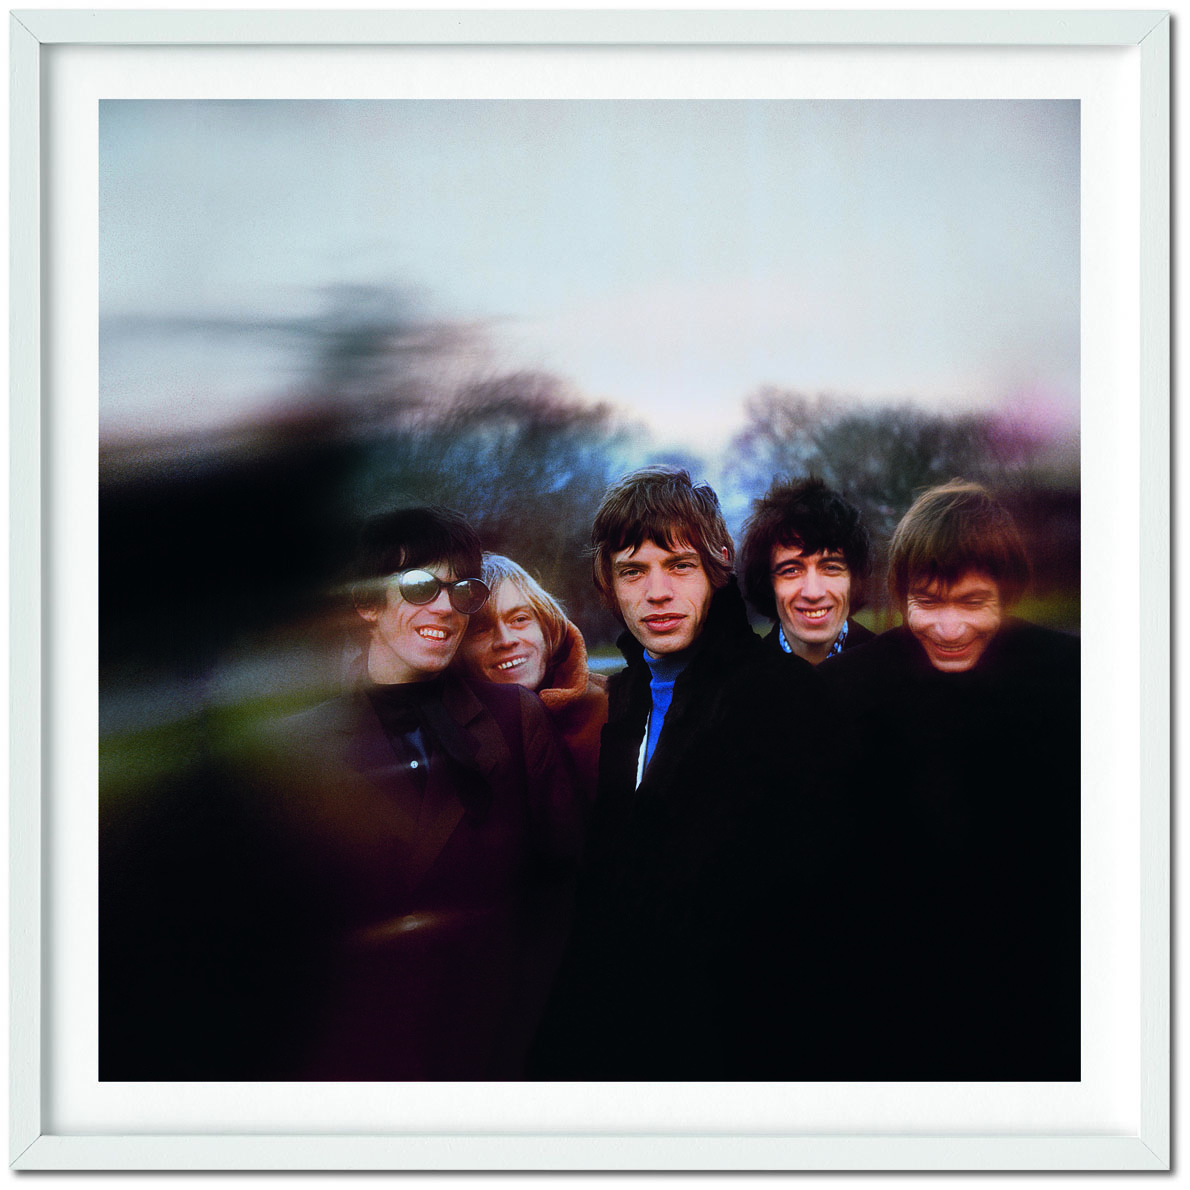 Gered Mankowitz Smiling Buttons (1966), signed by photographer Gered Mankowitz C-print on archival paper 50 x 50 cm / 20 x 20 in. (paper size) Frame not included